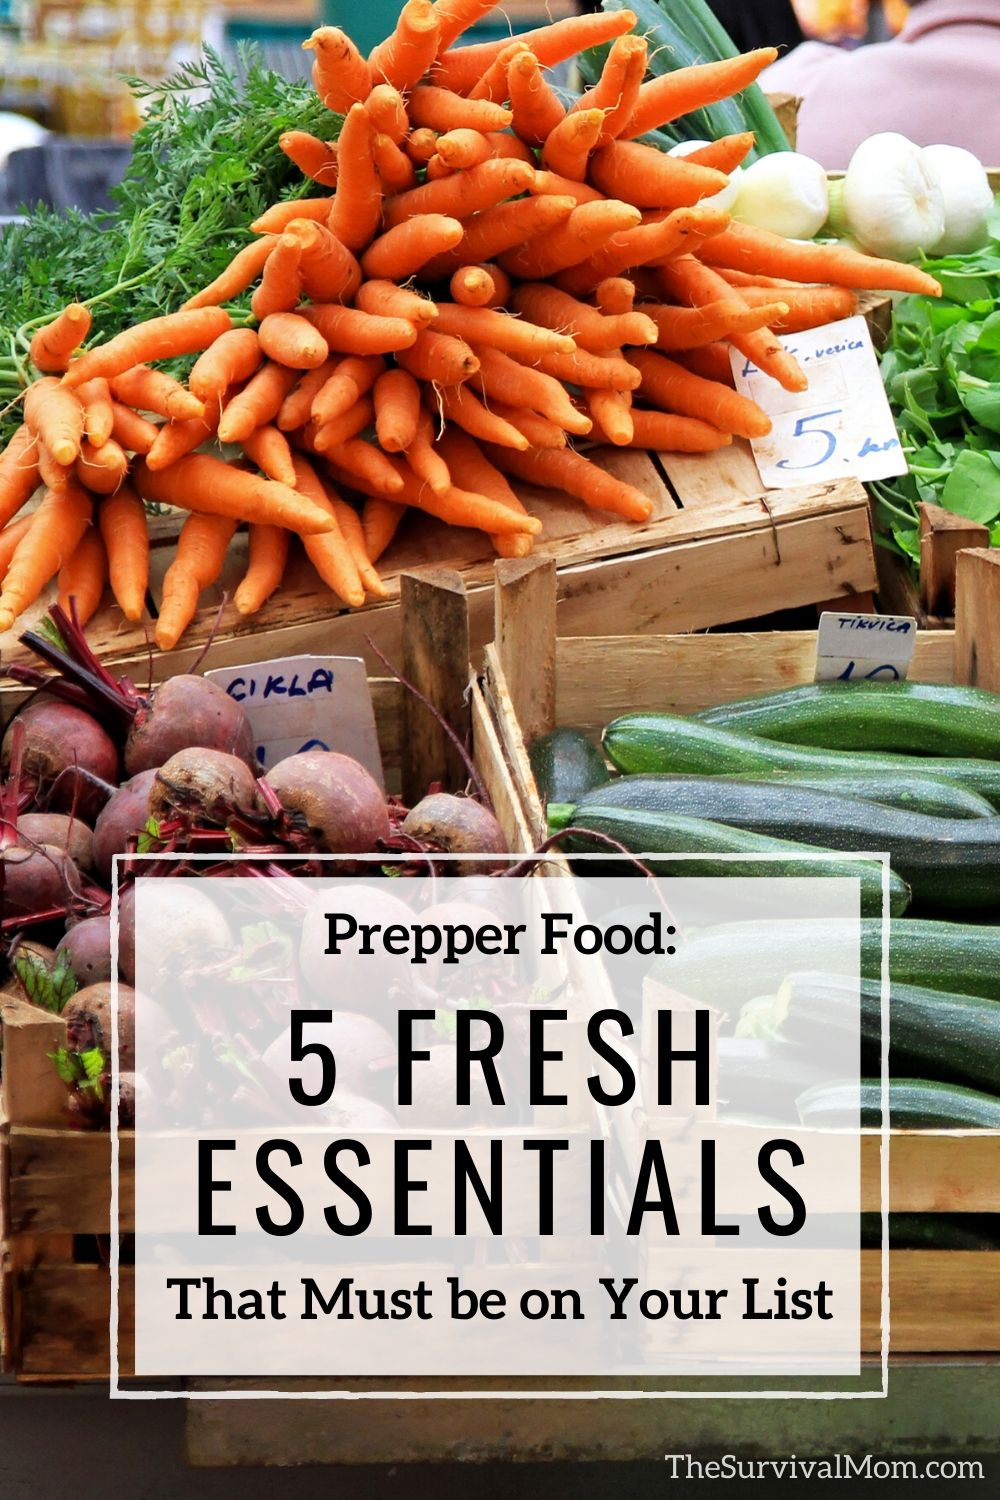 Image: fresh produce with carrots, beets, and squash